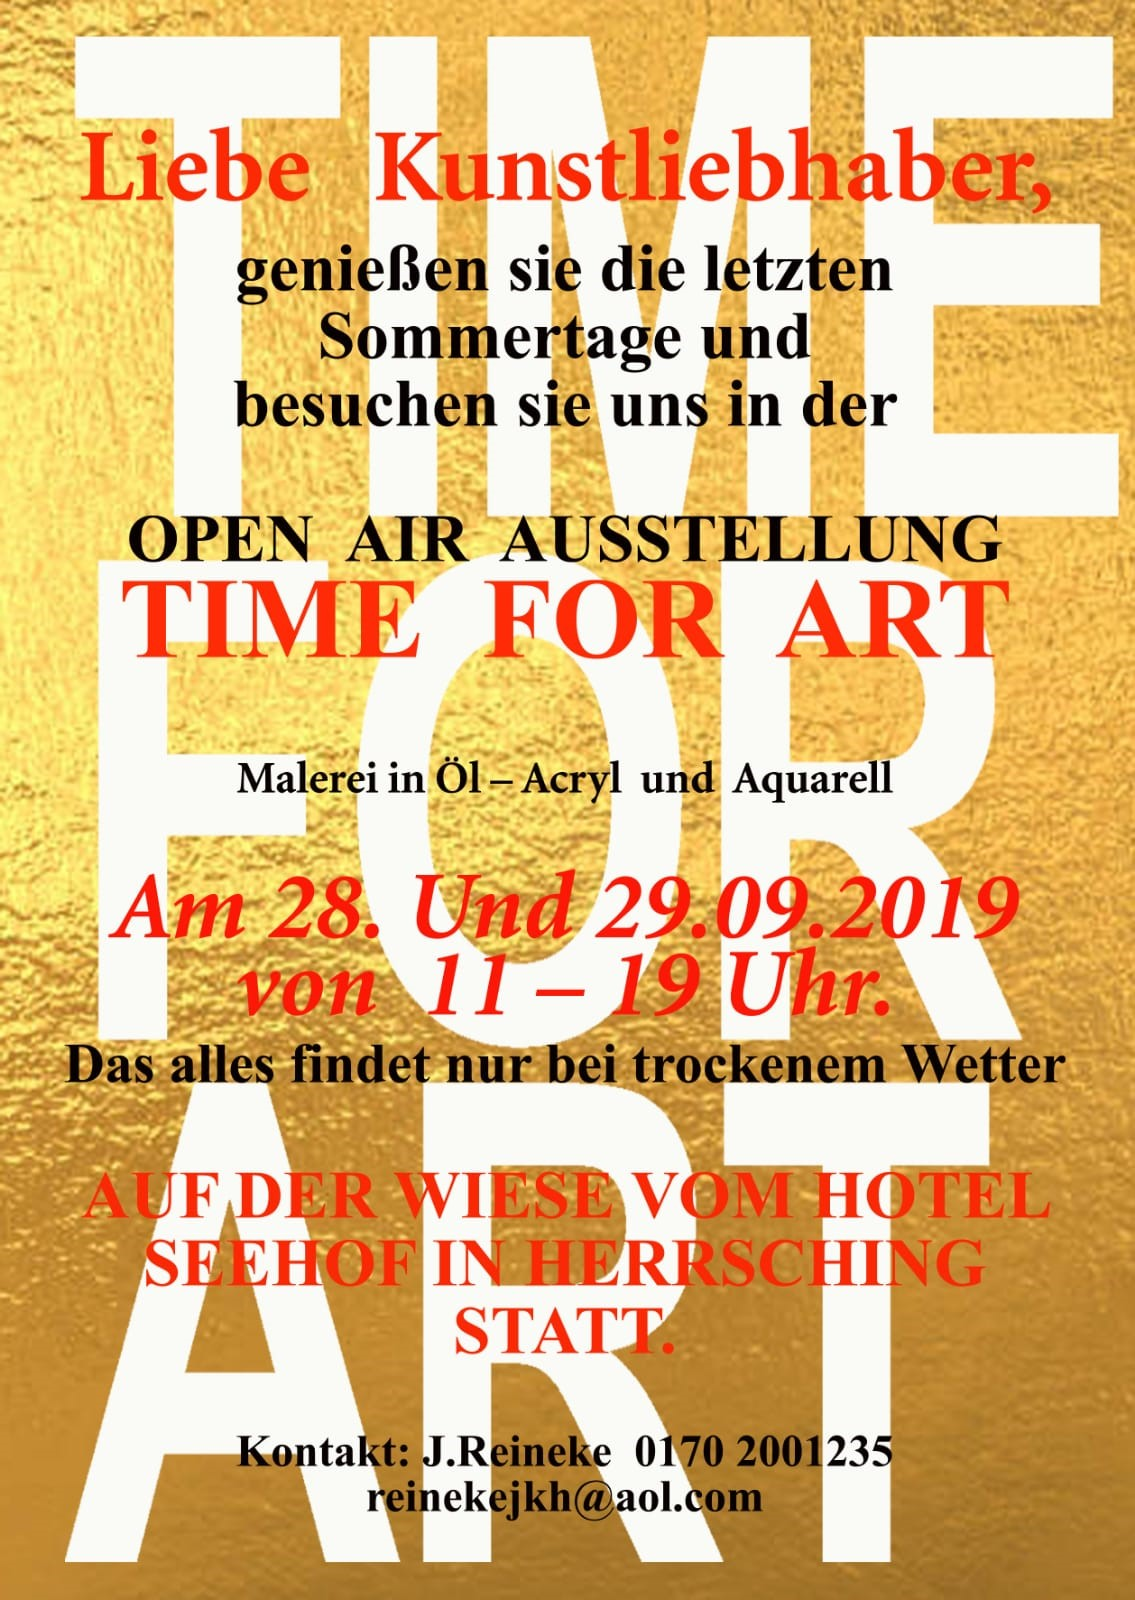 TIME FOR ART HERRSCHING.jpg